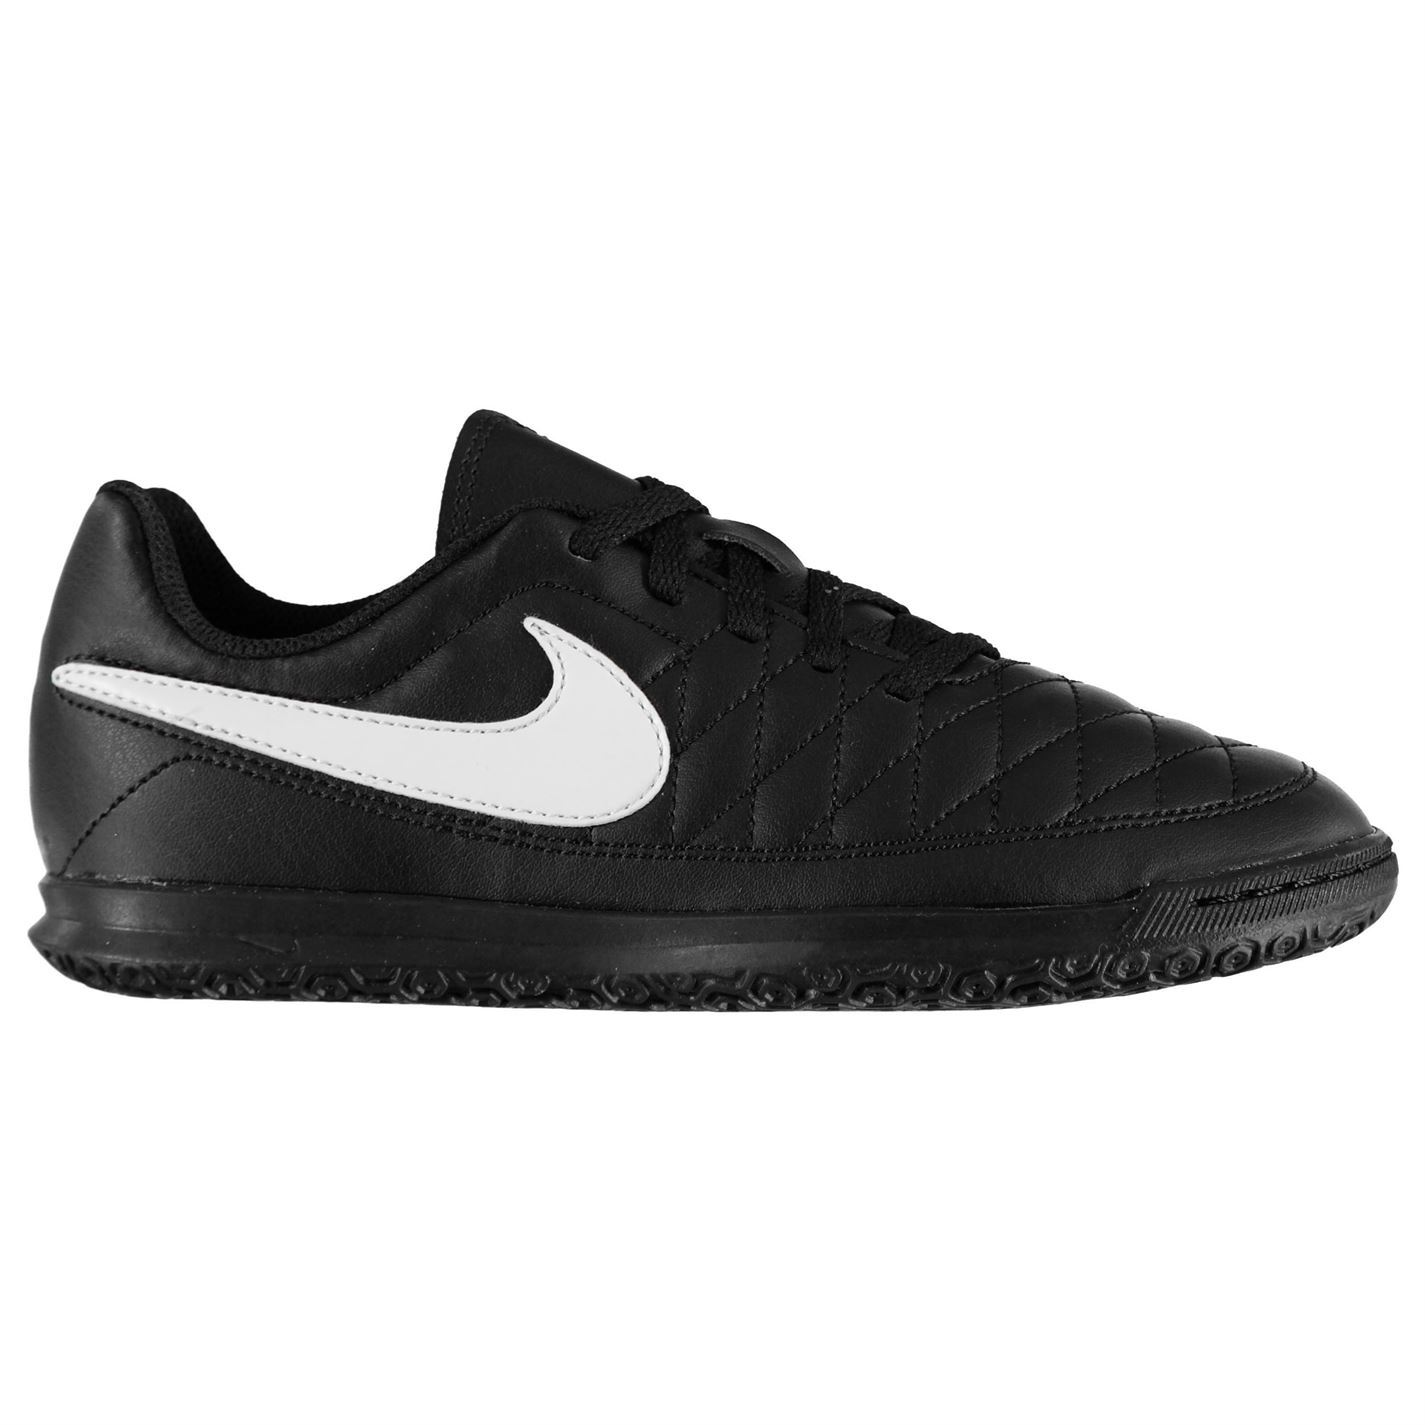 Nike-majestry-Indoor-Court-Football-Baskets-enfant-foot-baskets-chaussures miniature 9